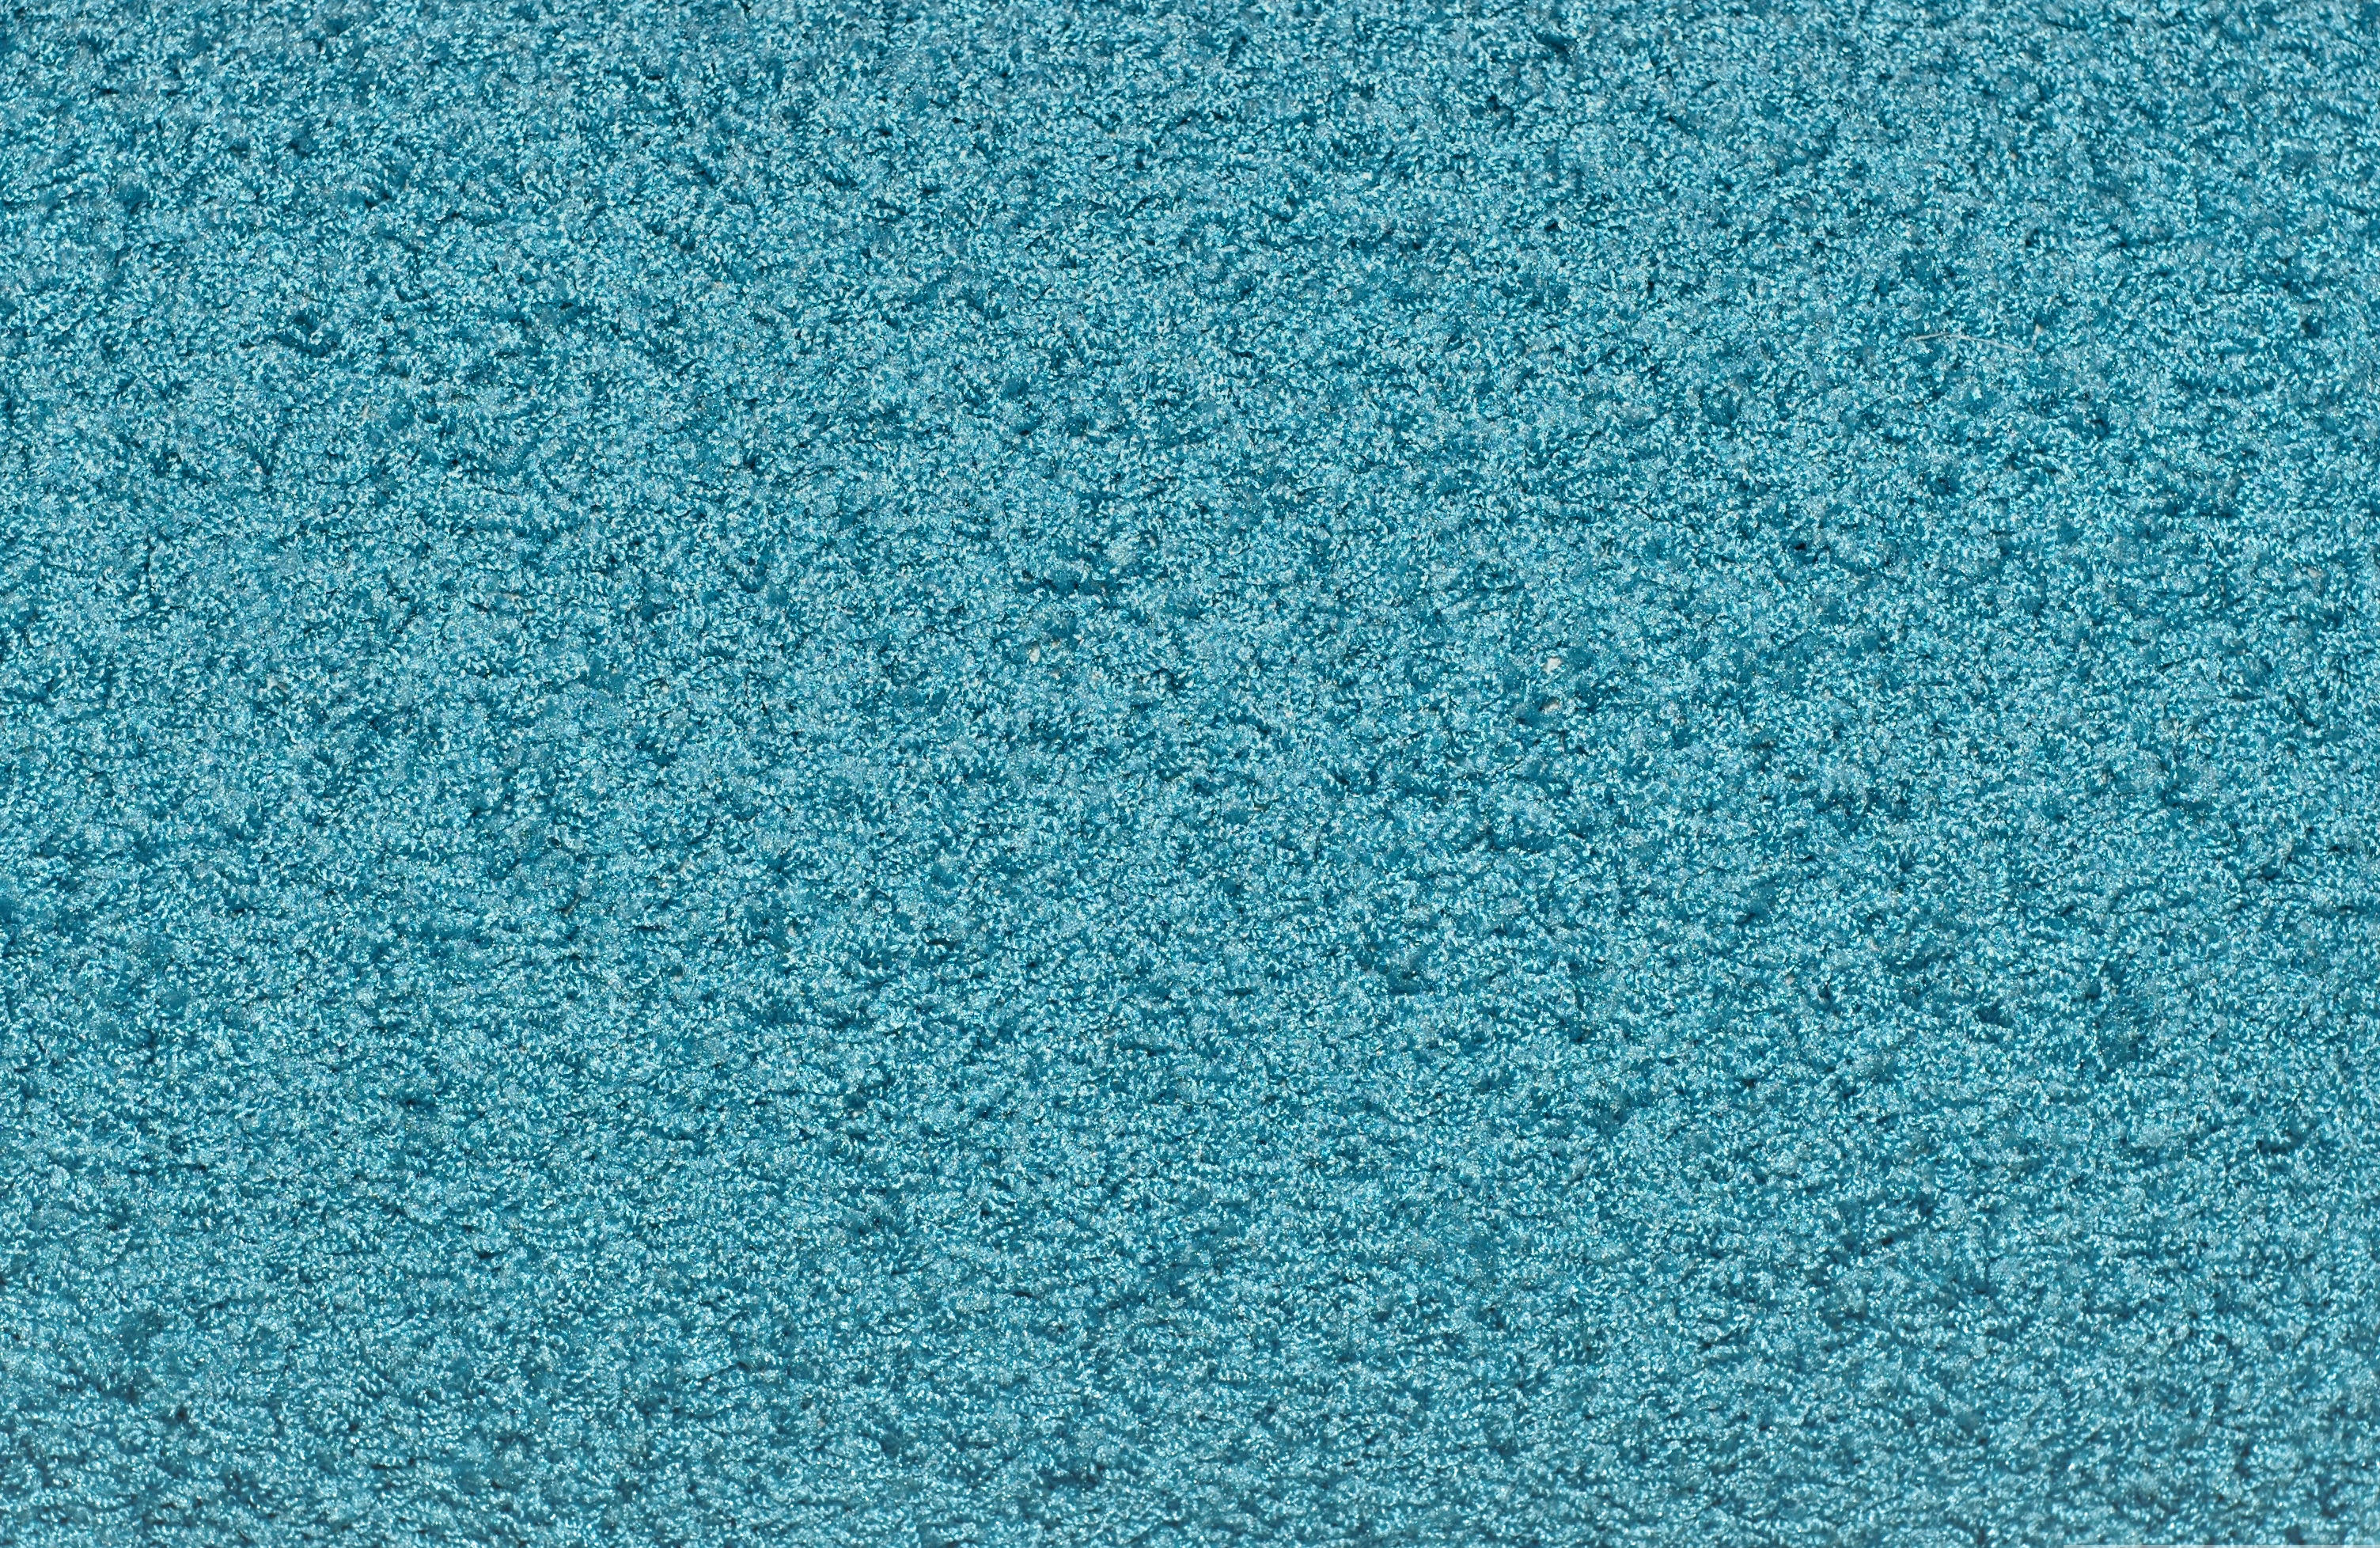 15 blue carpet textures photoshop free creatives for Blue carpet tiles texture